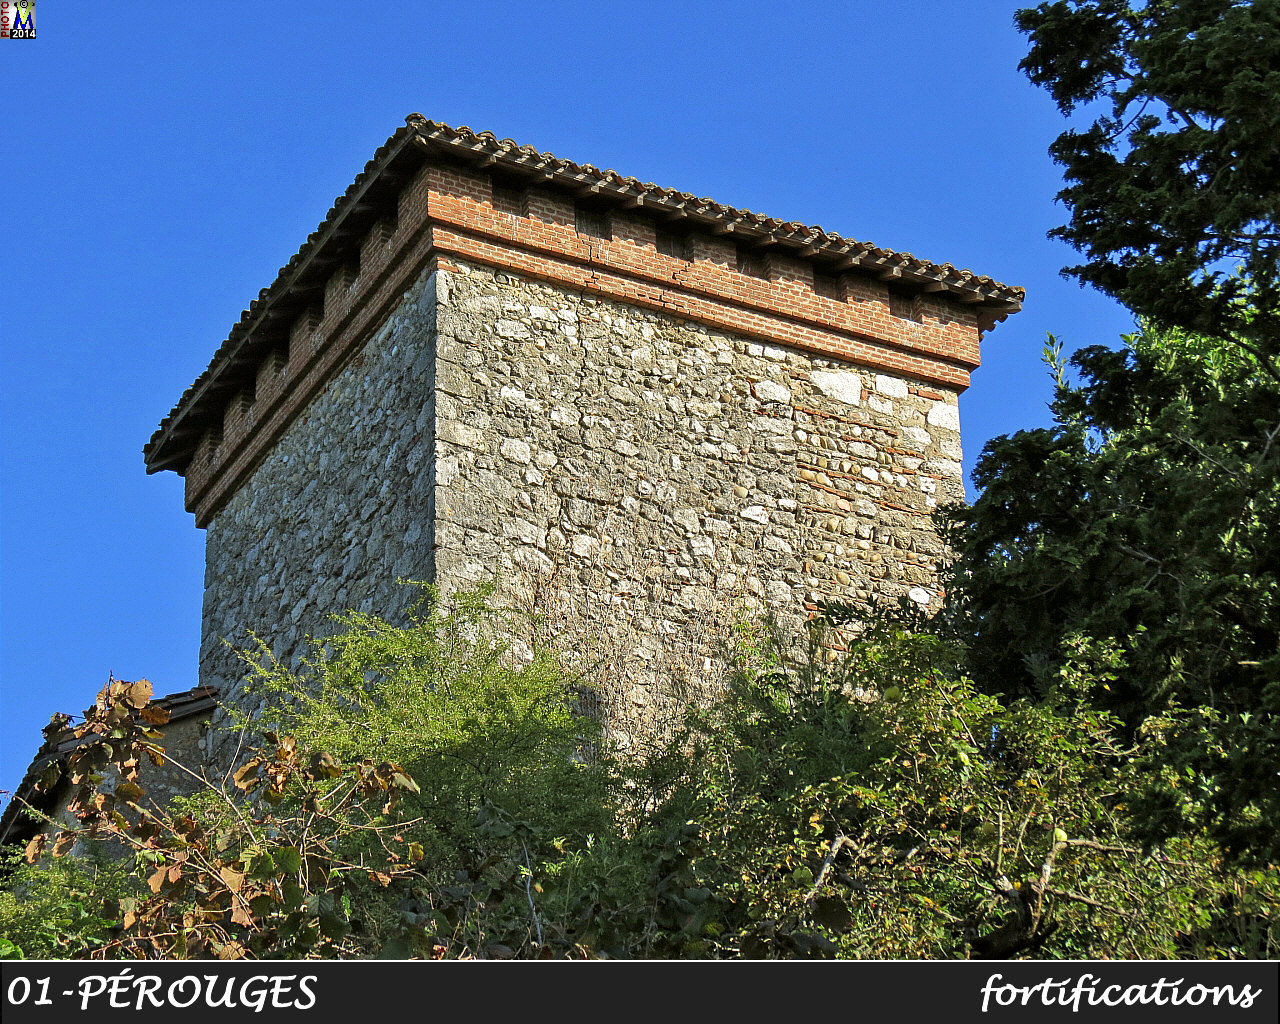 01PEROUGES_fortifications_104.jpg